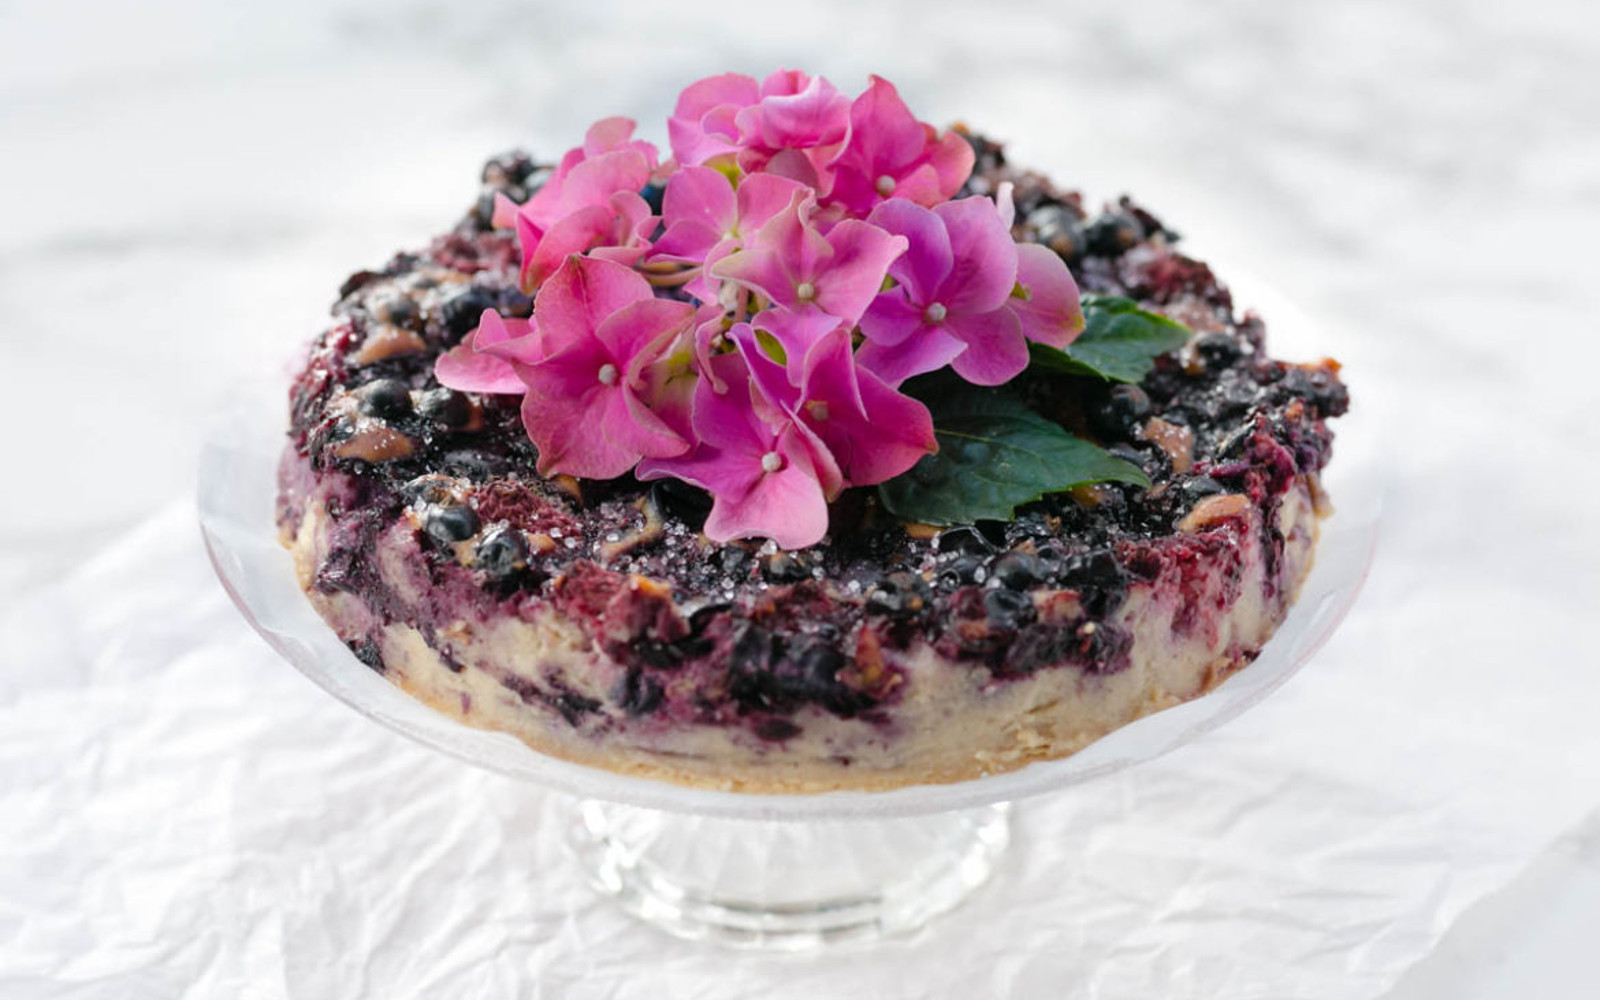 Baked Dessert Tofu With Black Currants, Raspberries, and Blueberries